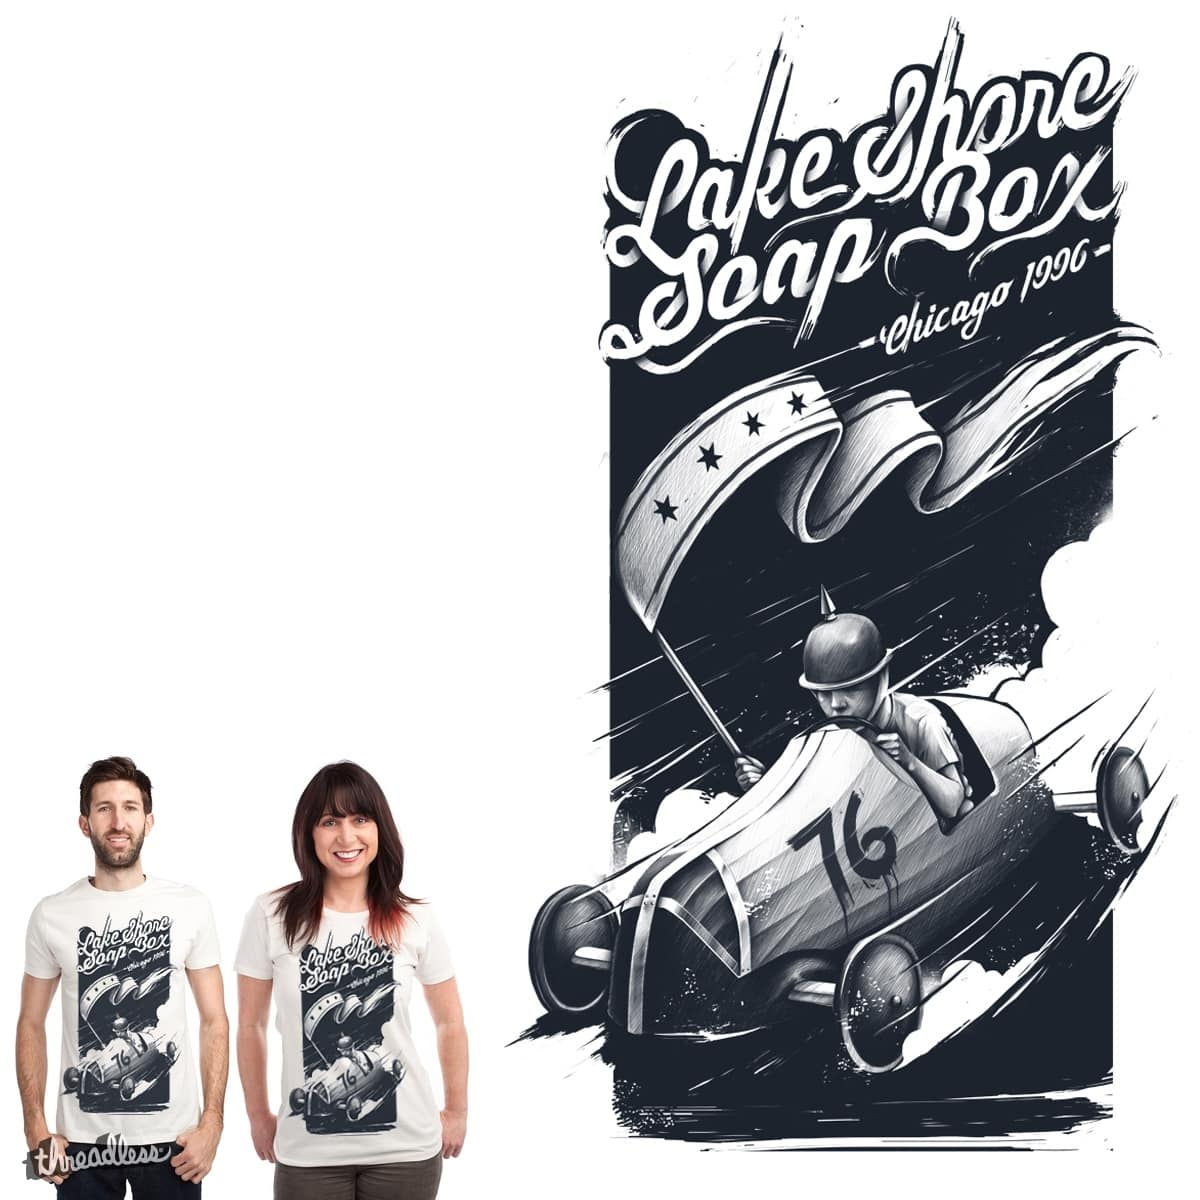 Lake Shore Soap Box by CUBAN0 on Threadless